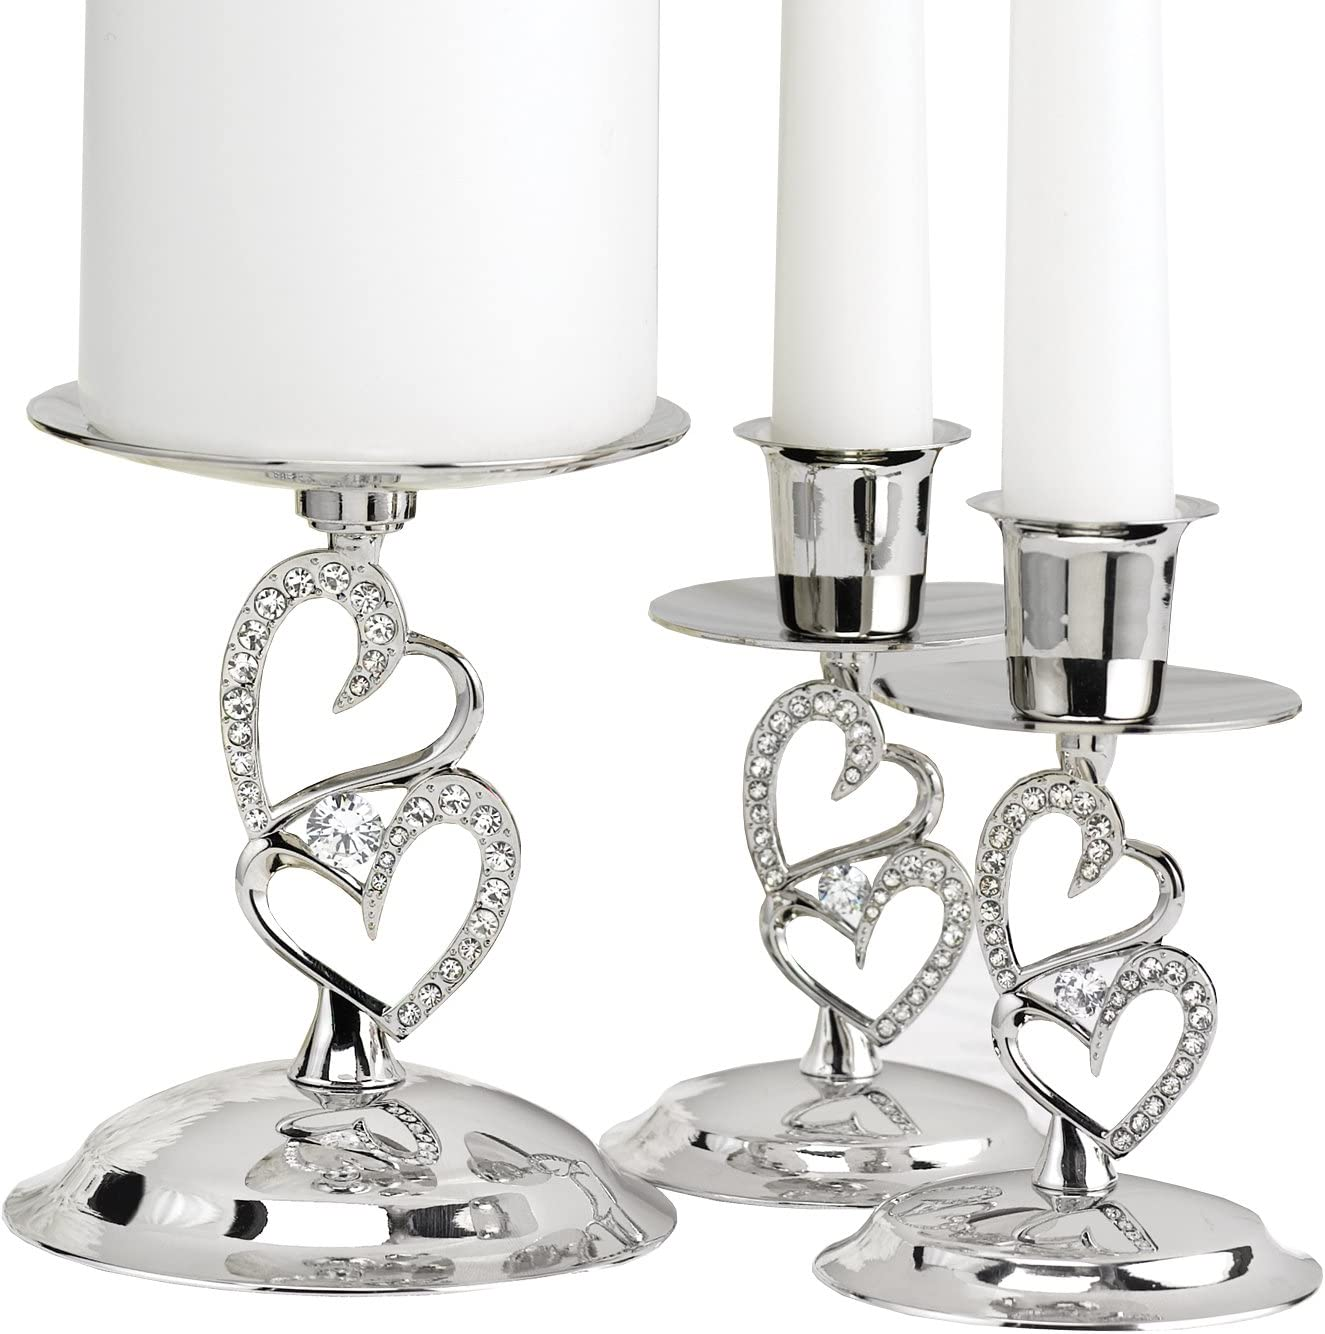 Hortense B. High order Hewitt Sparkling Love 4-Inch Set Nic Candle Stands Directly managed store